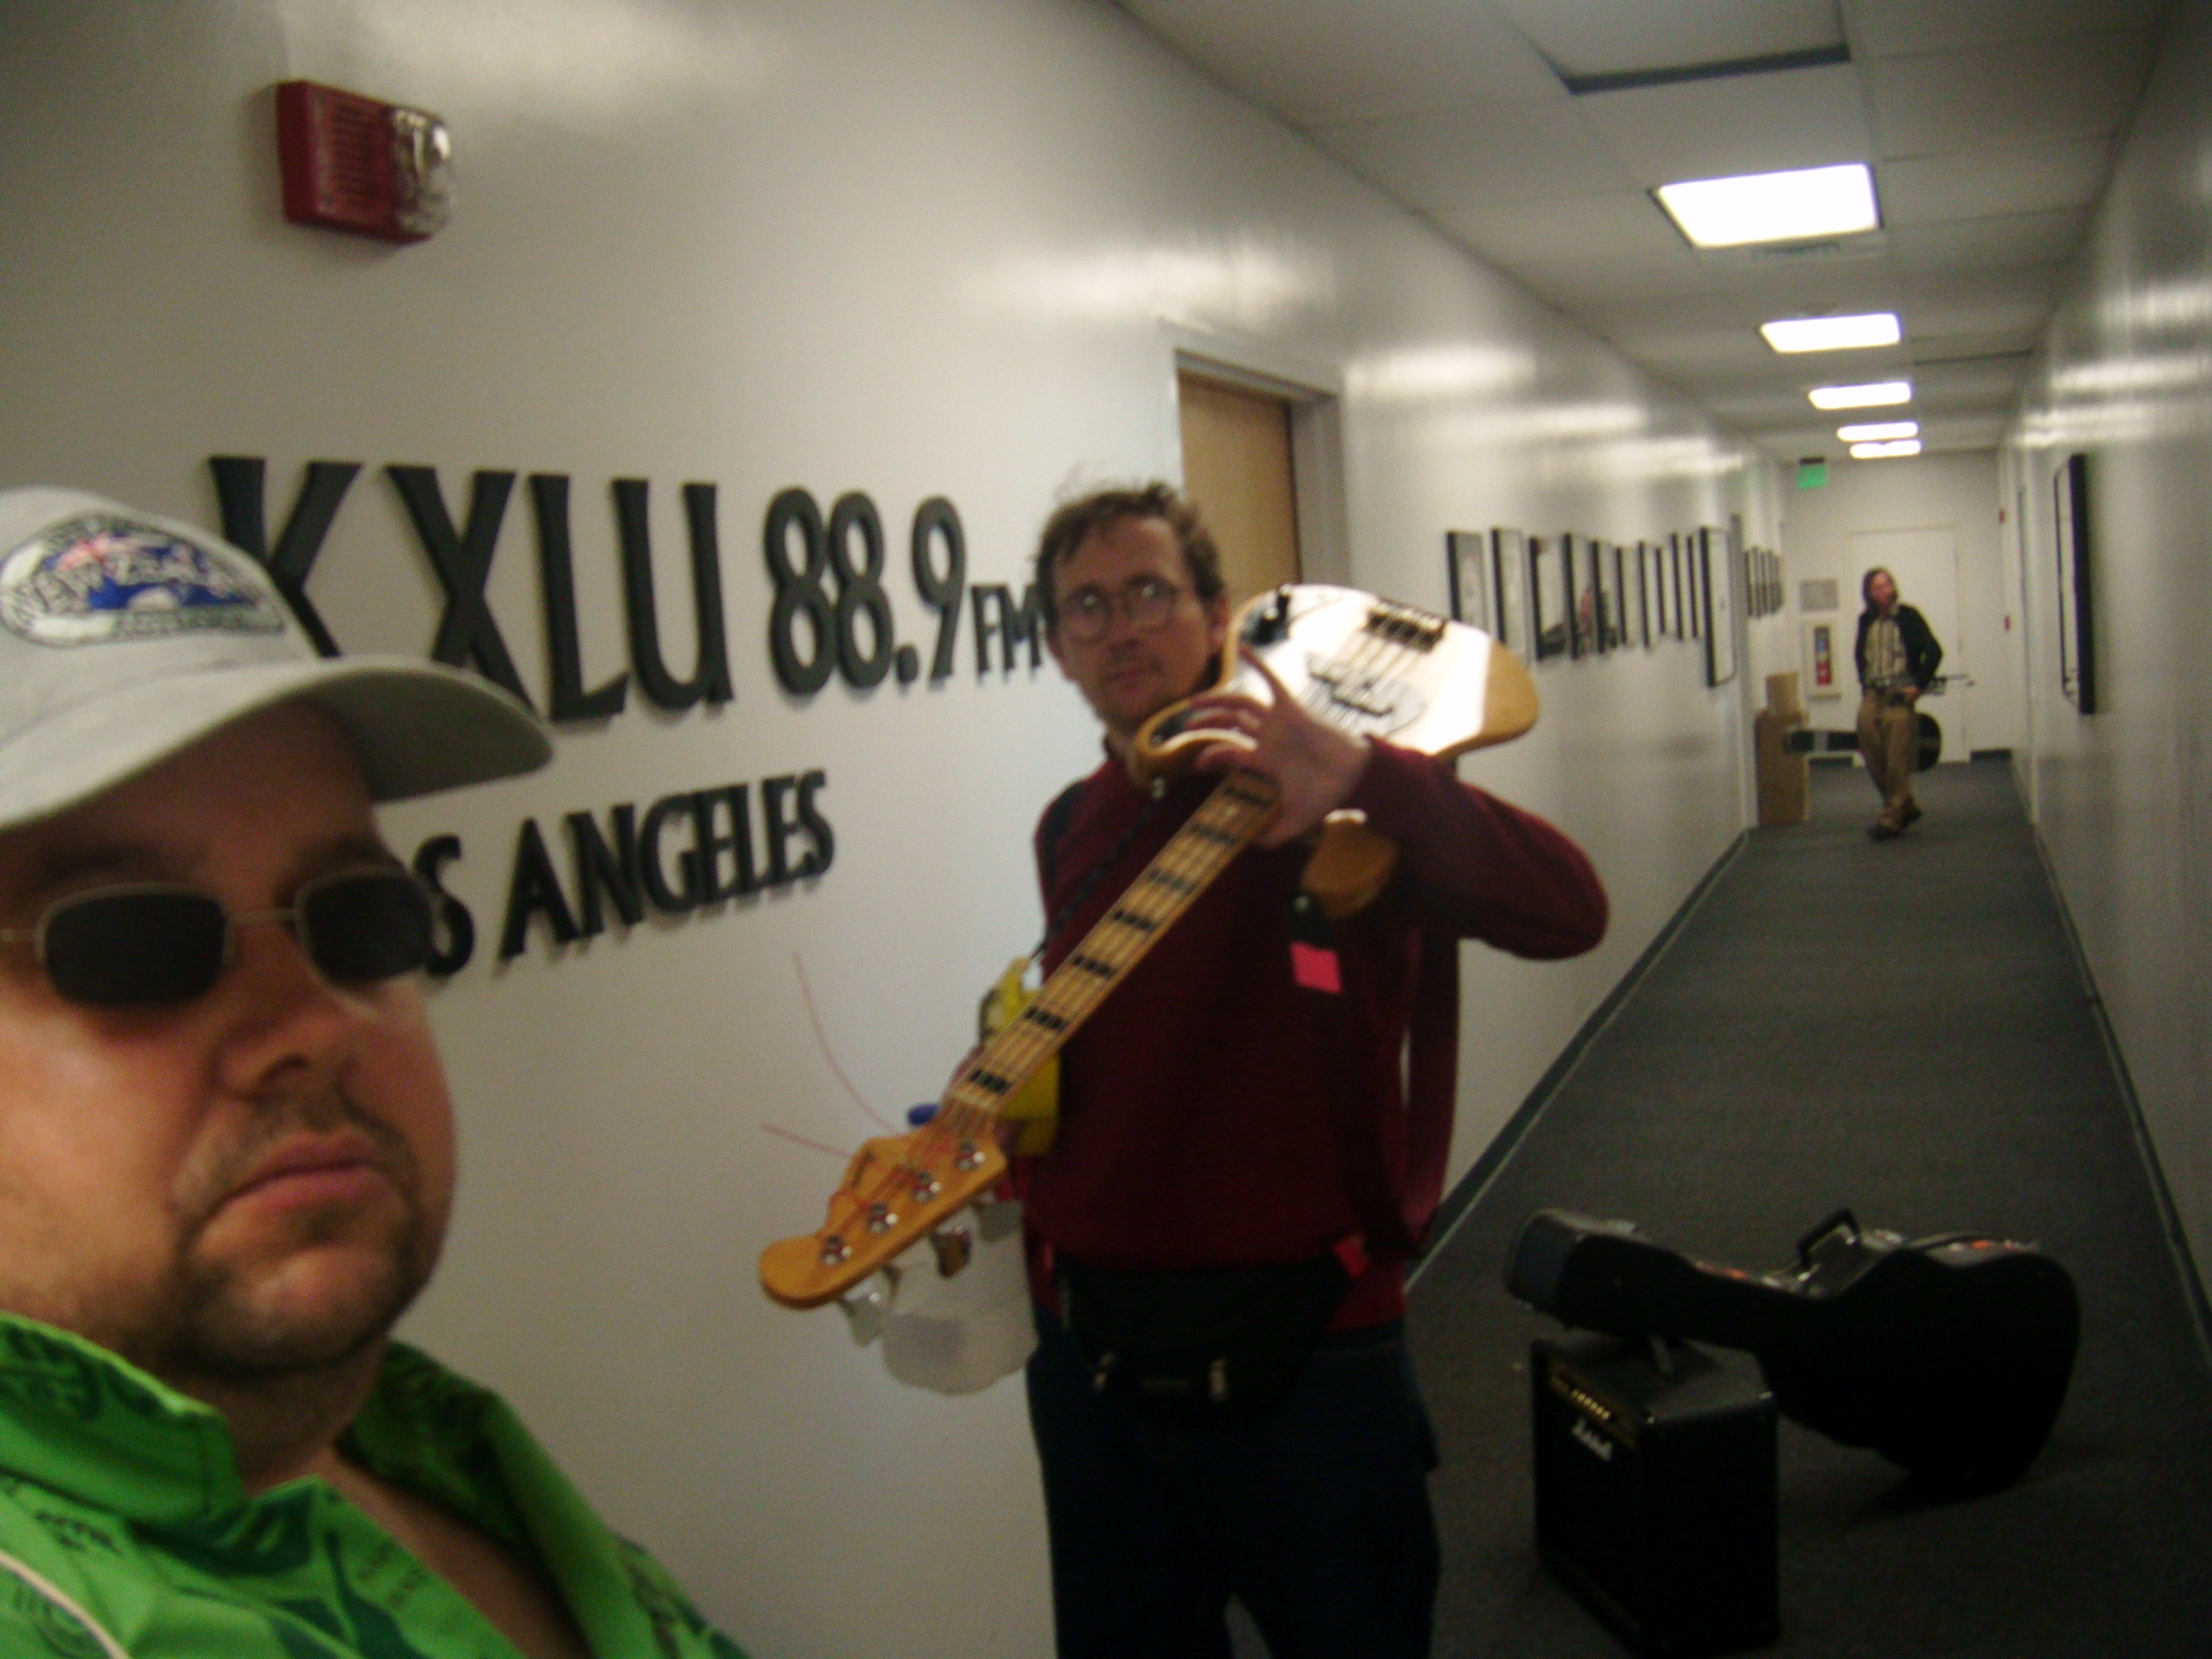 KXLU Recording for radio - UCLA at Irvine, California